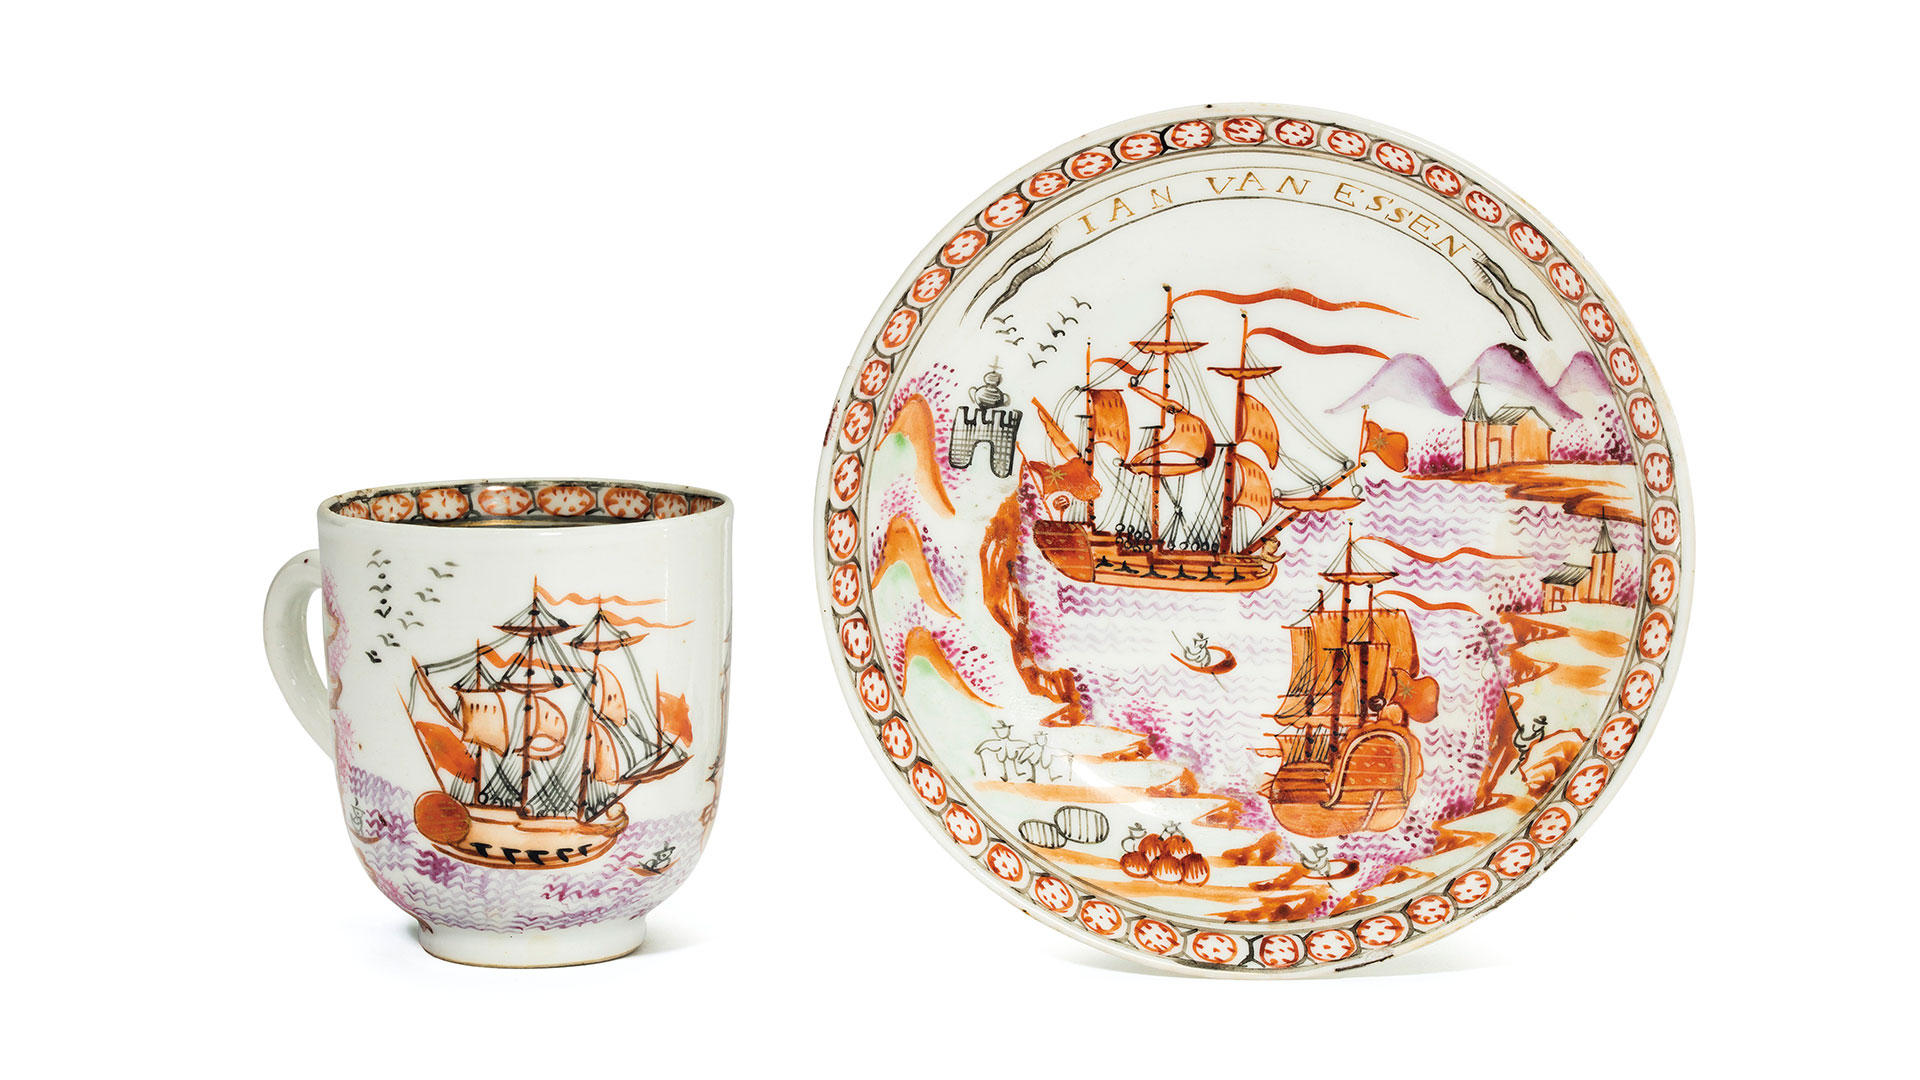 Southern Living Rockefeller Christies Auction Chinese Export Shipping Cup